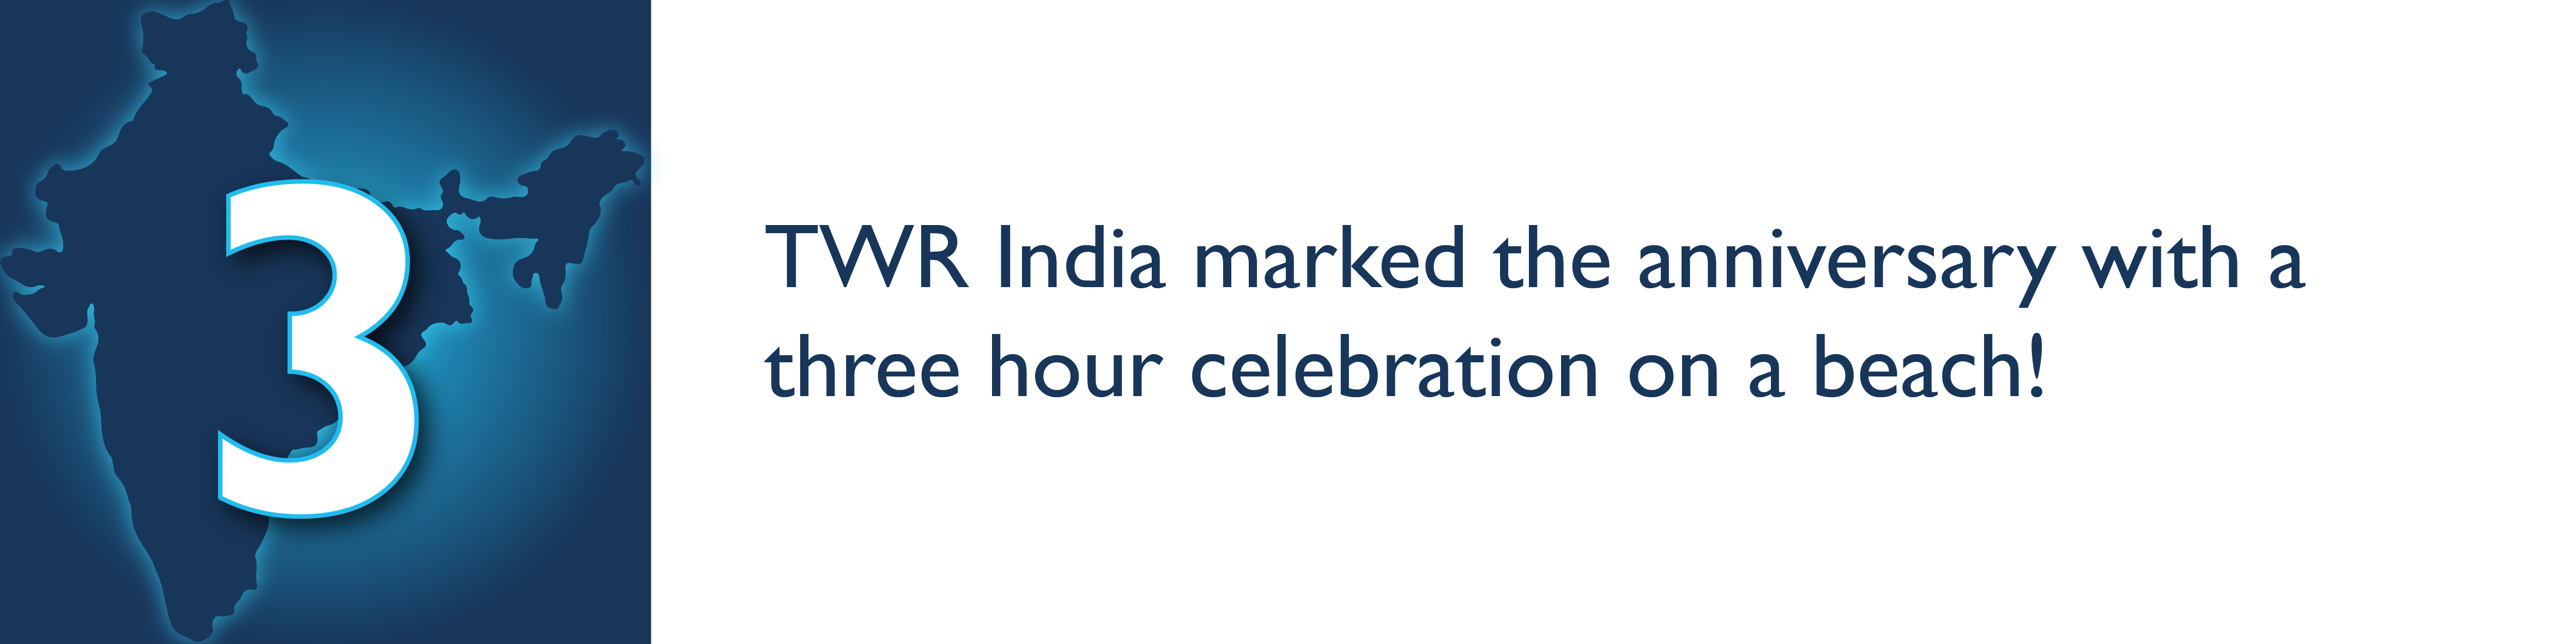 TWR India marked the anniversary with a three hour celebration on a beach!